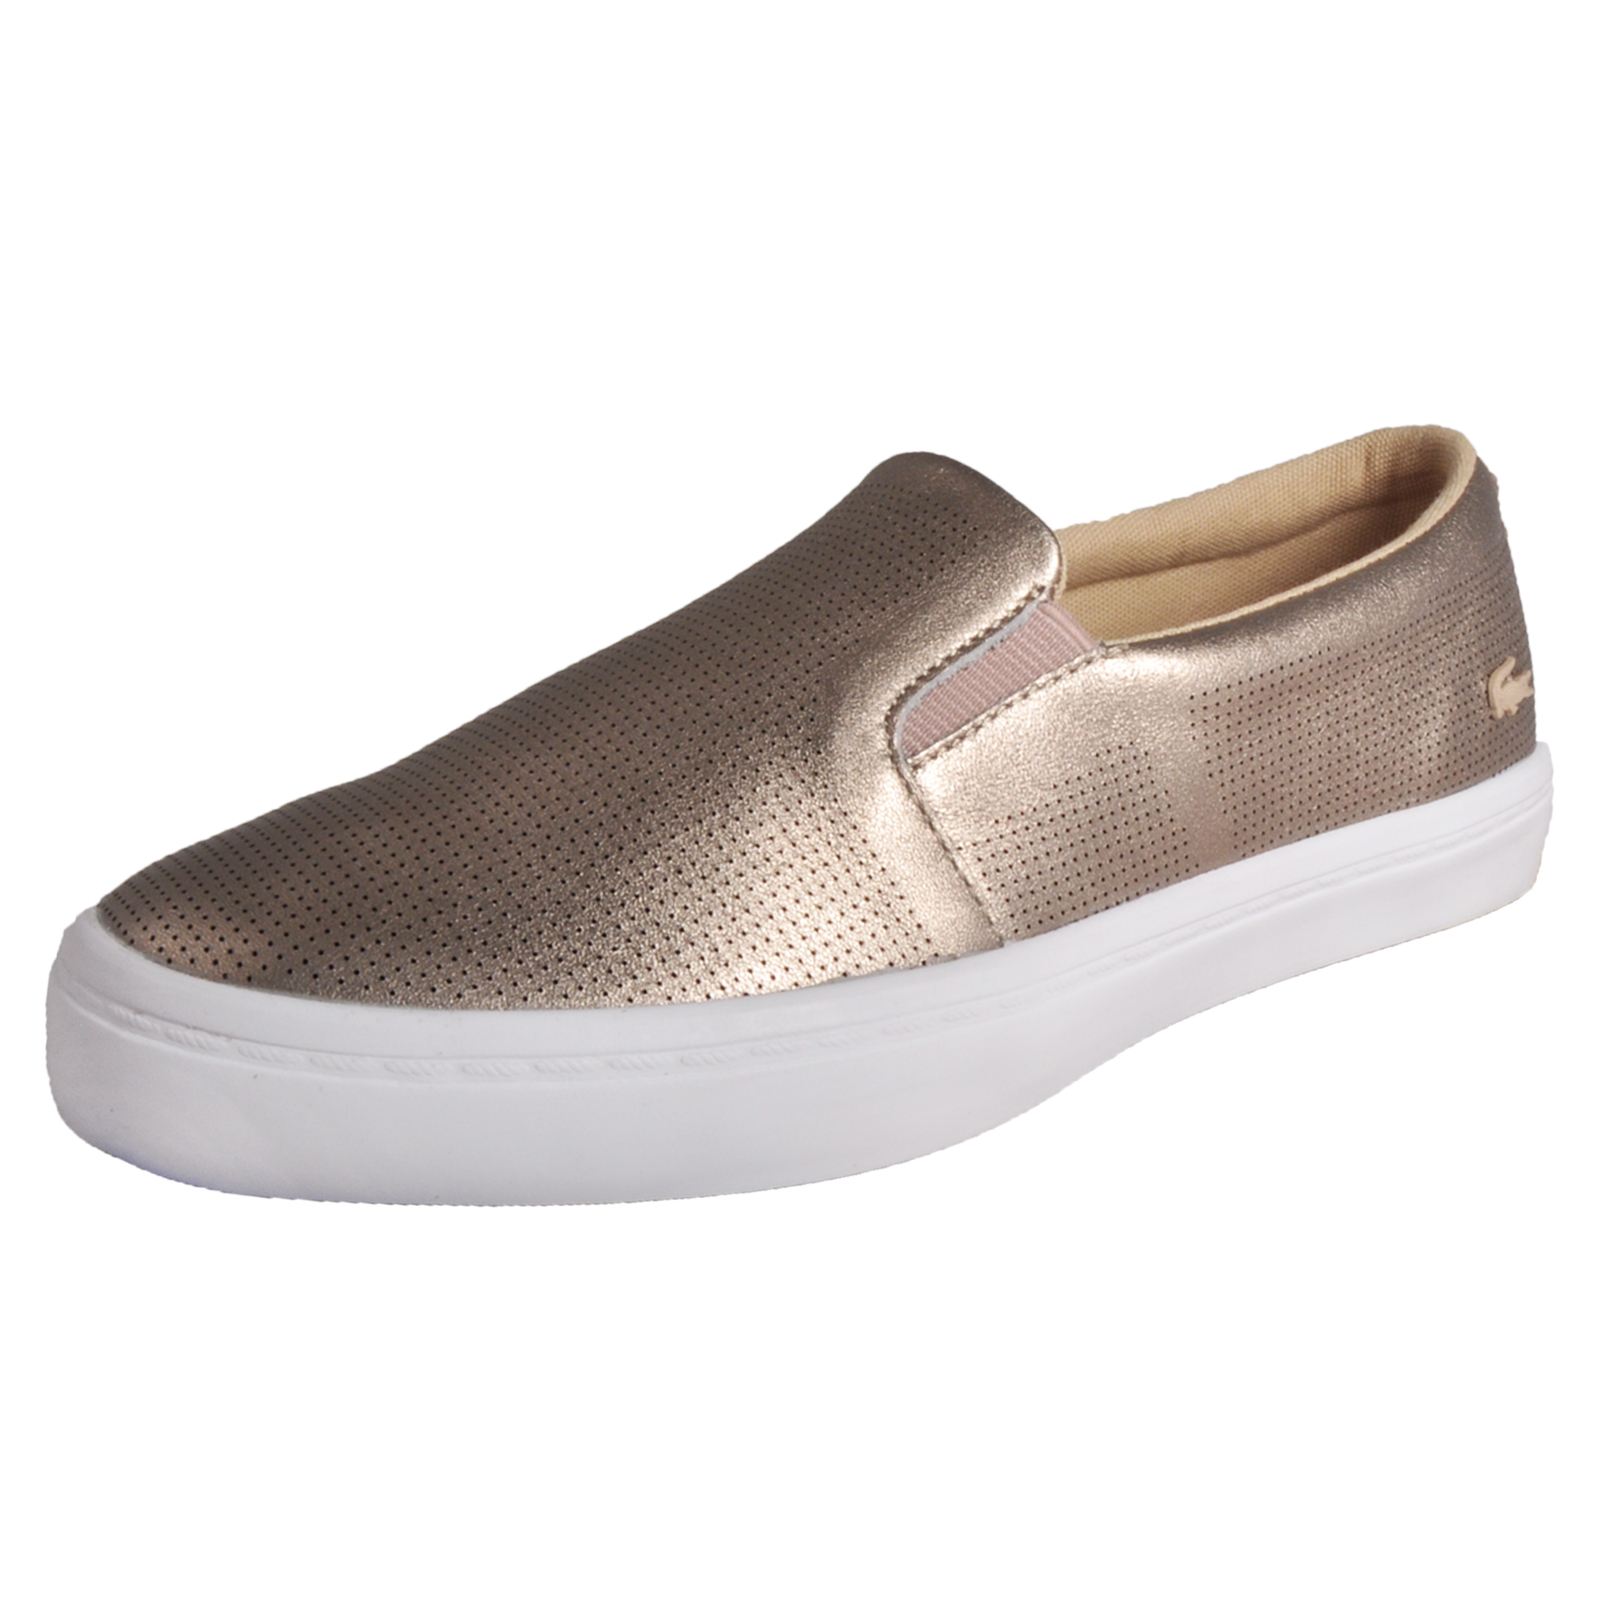 98776a105d88c3 Details about Lacoste Gazon 116 Womens Classic Casual Designer Slip-On  Trainers Gold